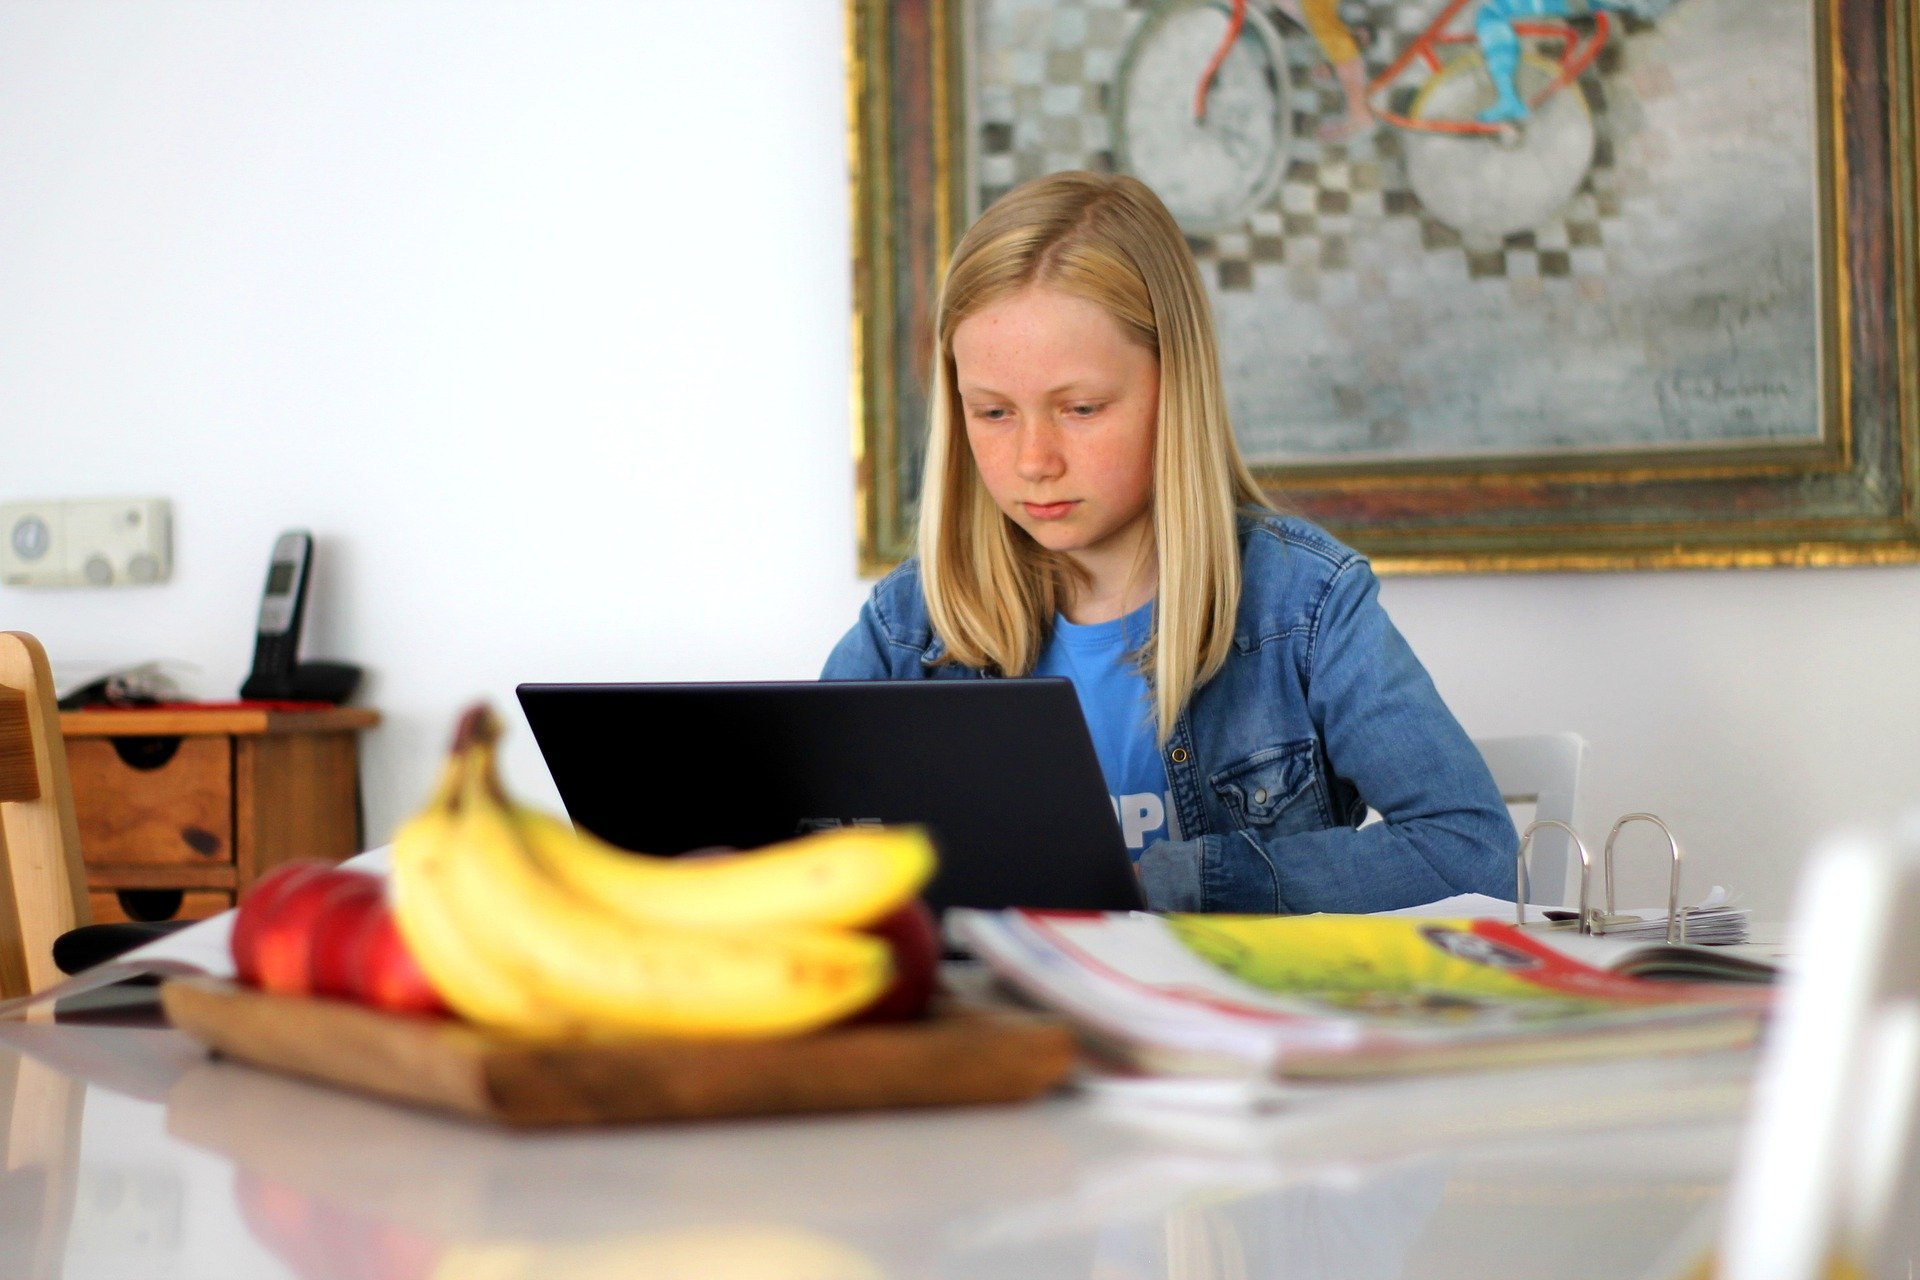 girl working on laptop in kitchen